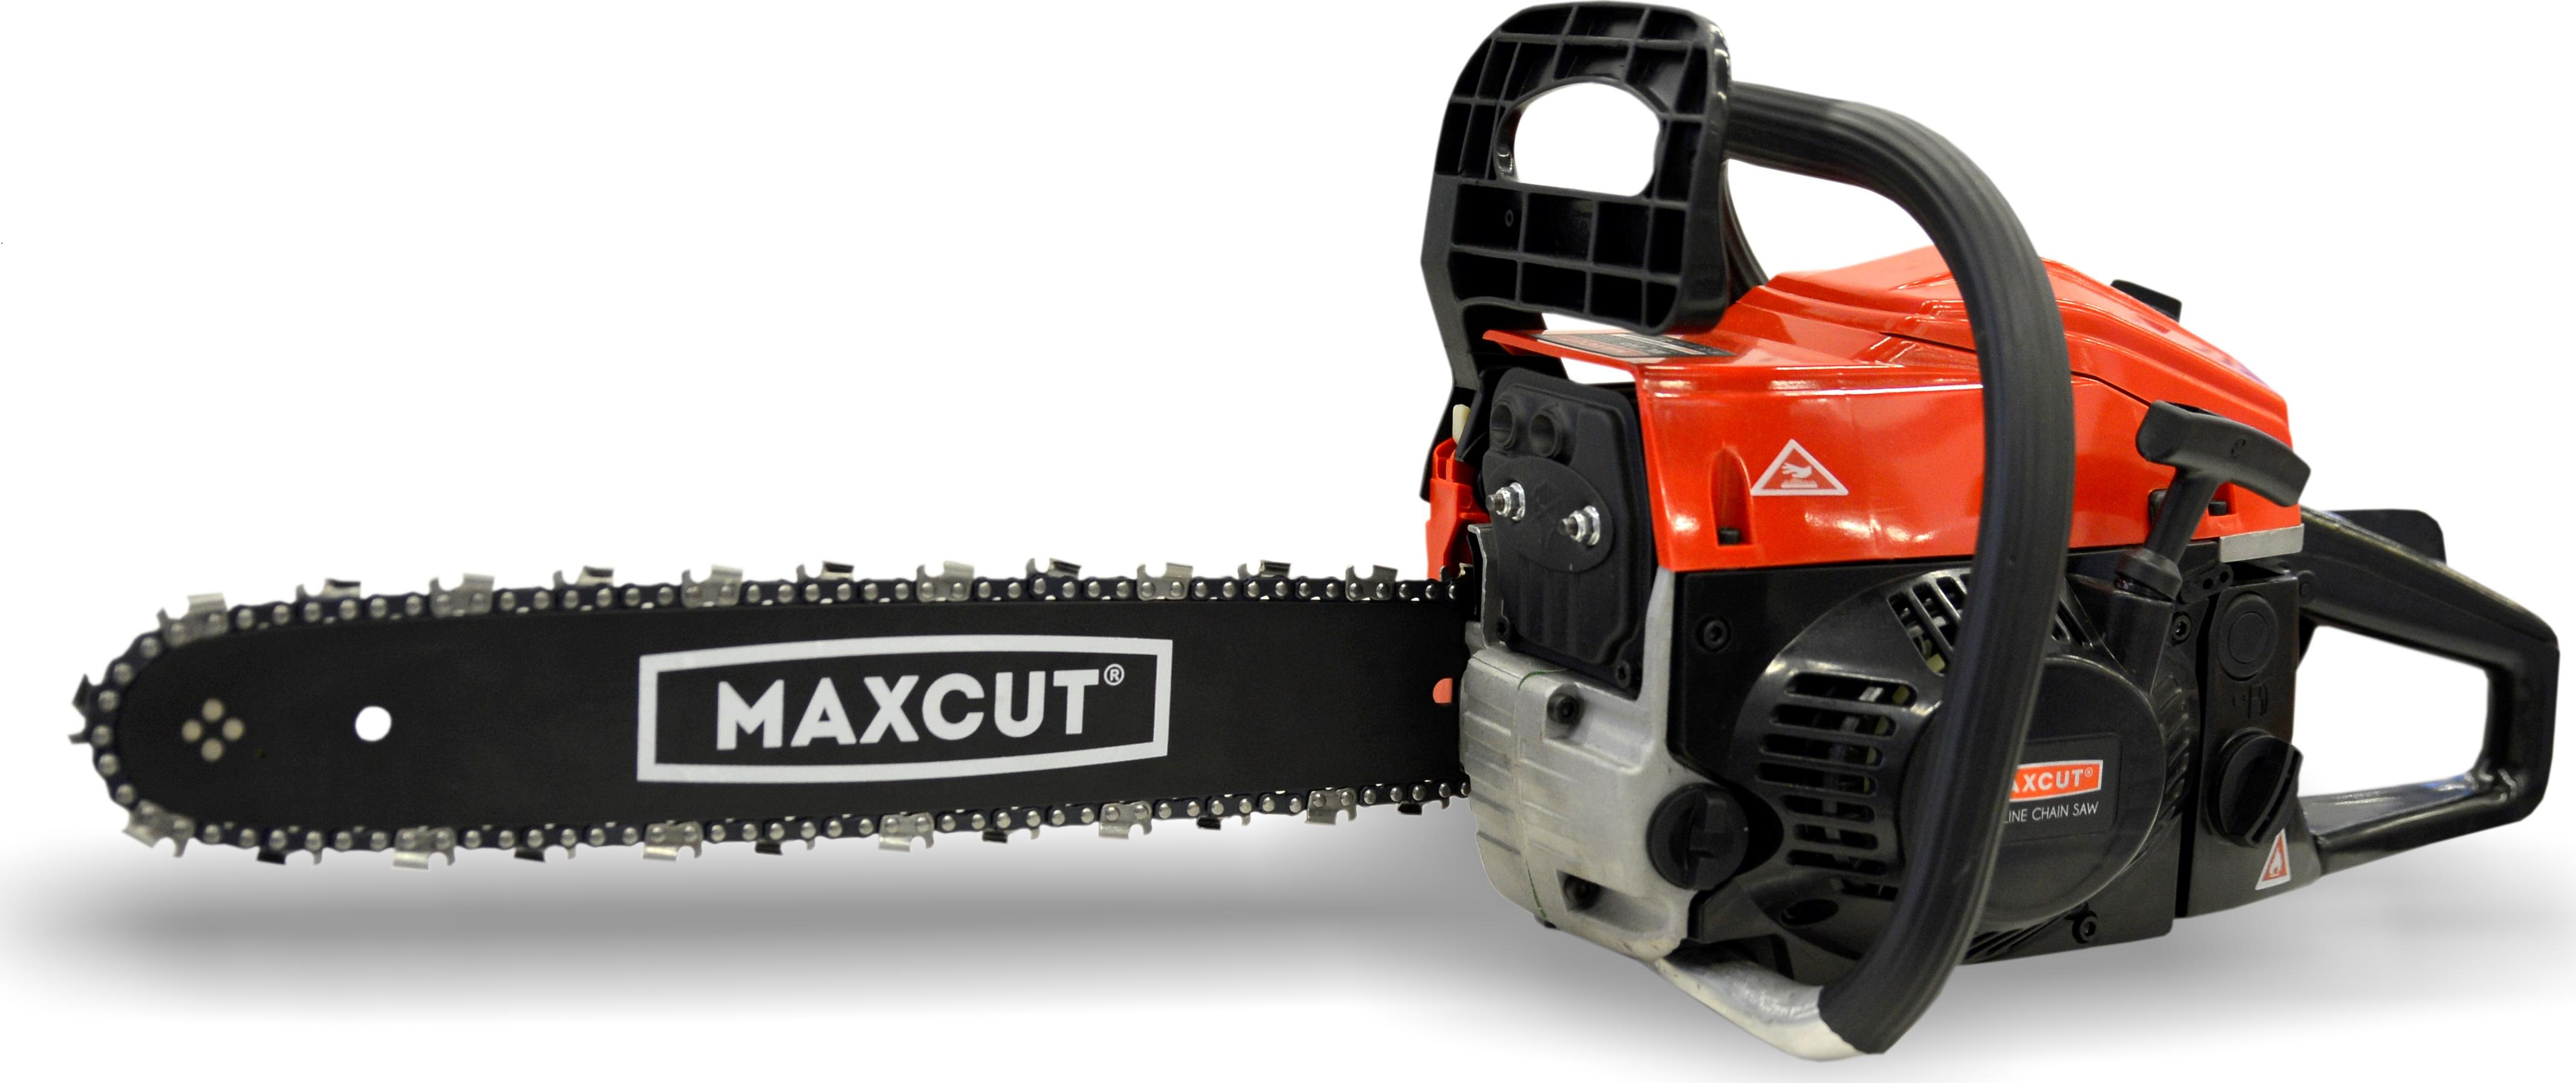 Бензопила Maxcut MC 146 Shark